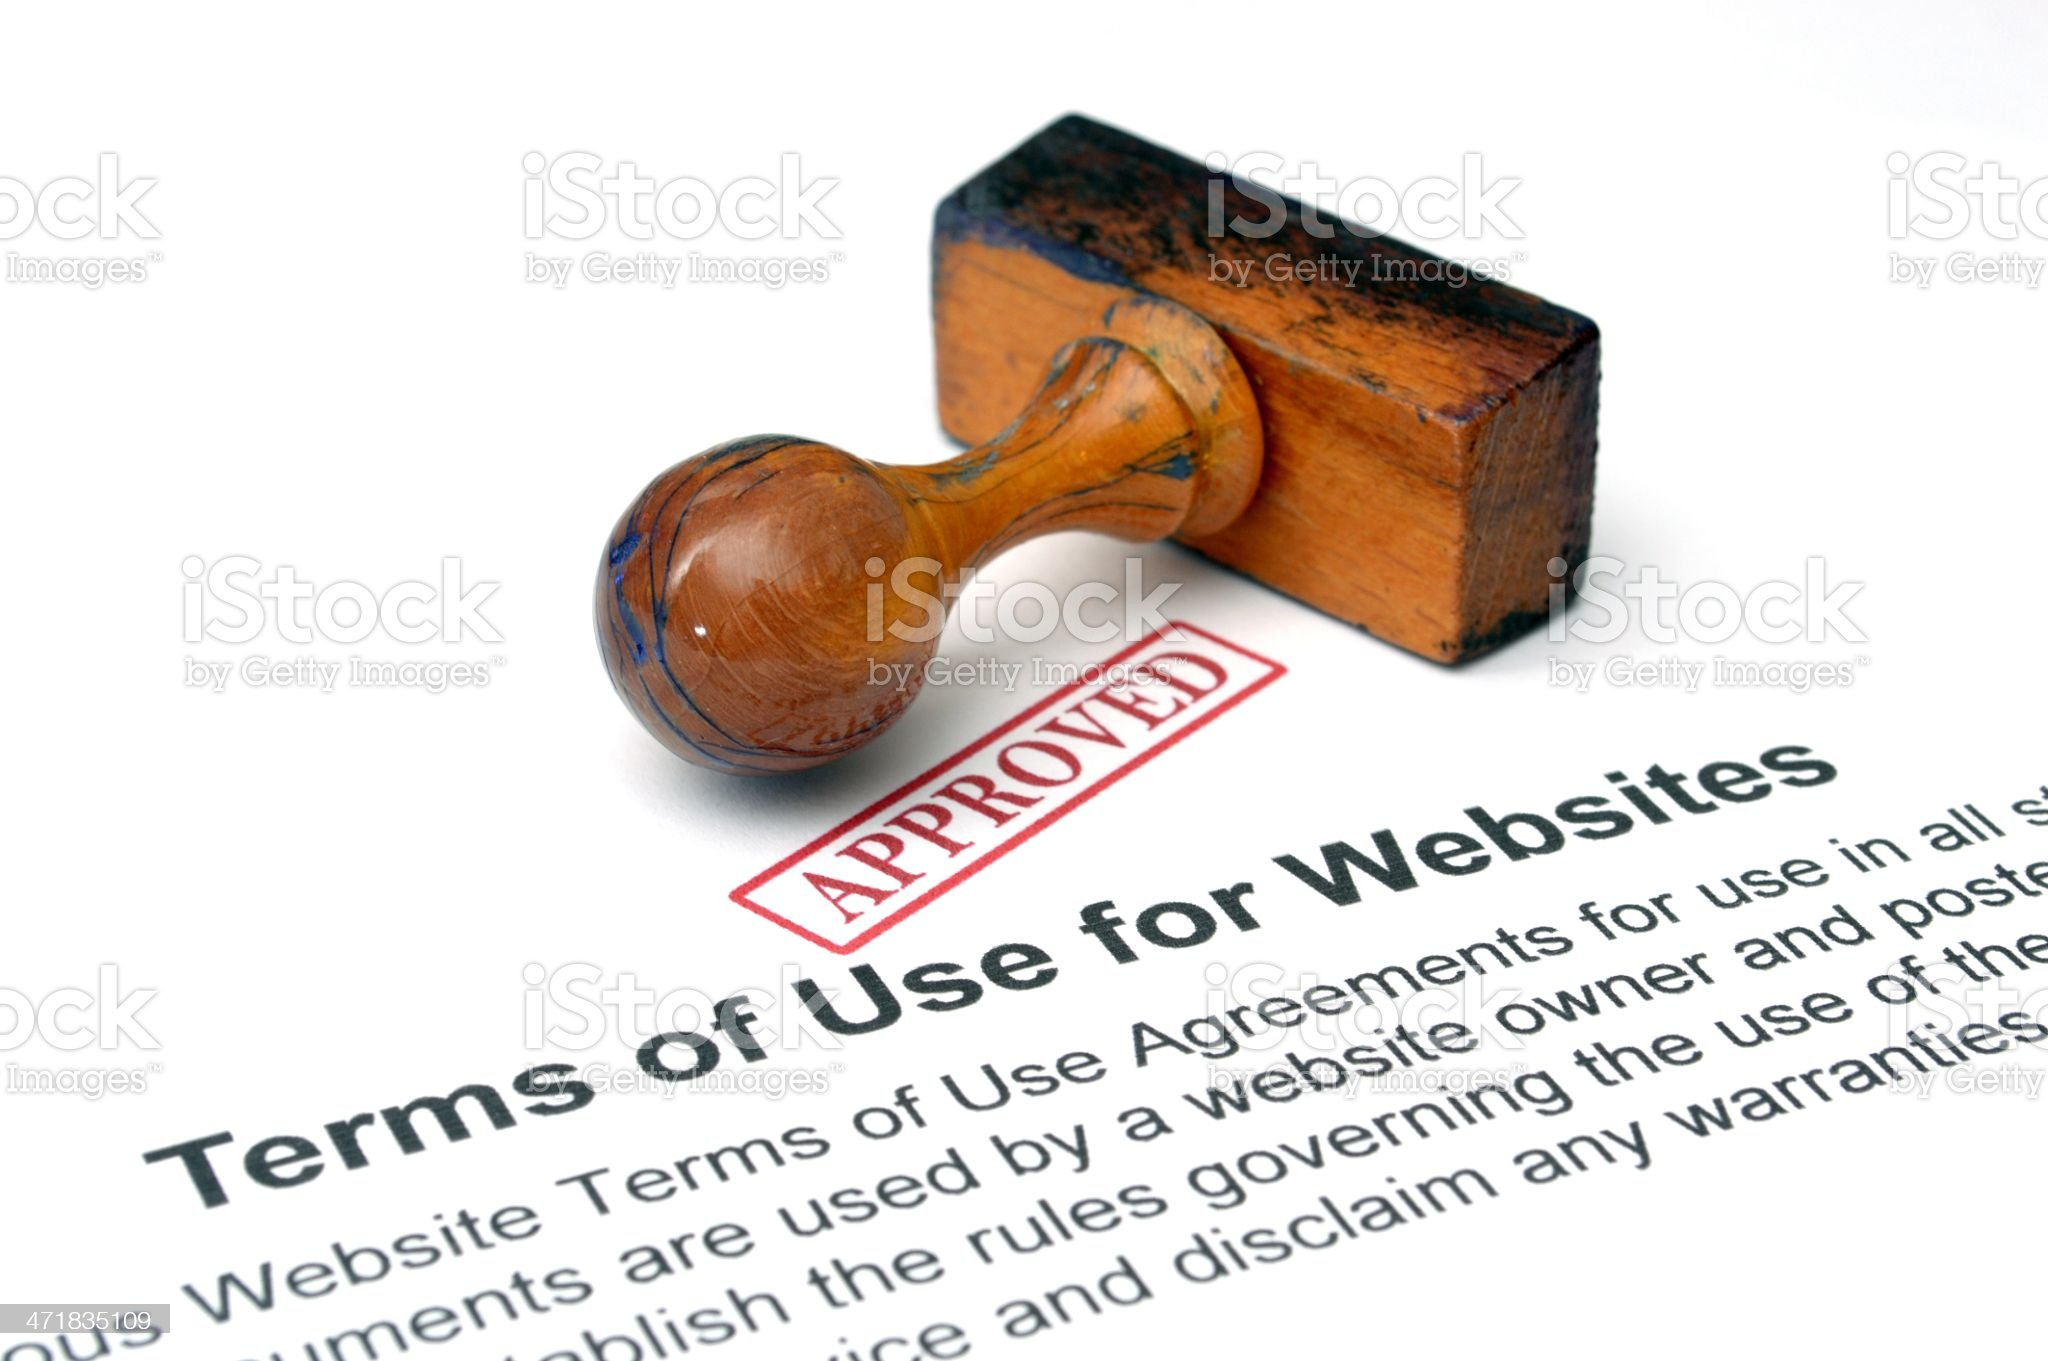 Terms of use websites royalty-free stock photo